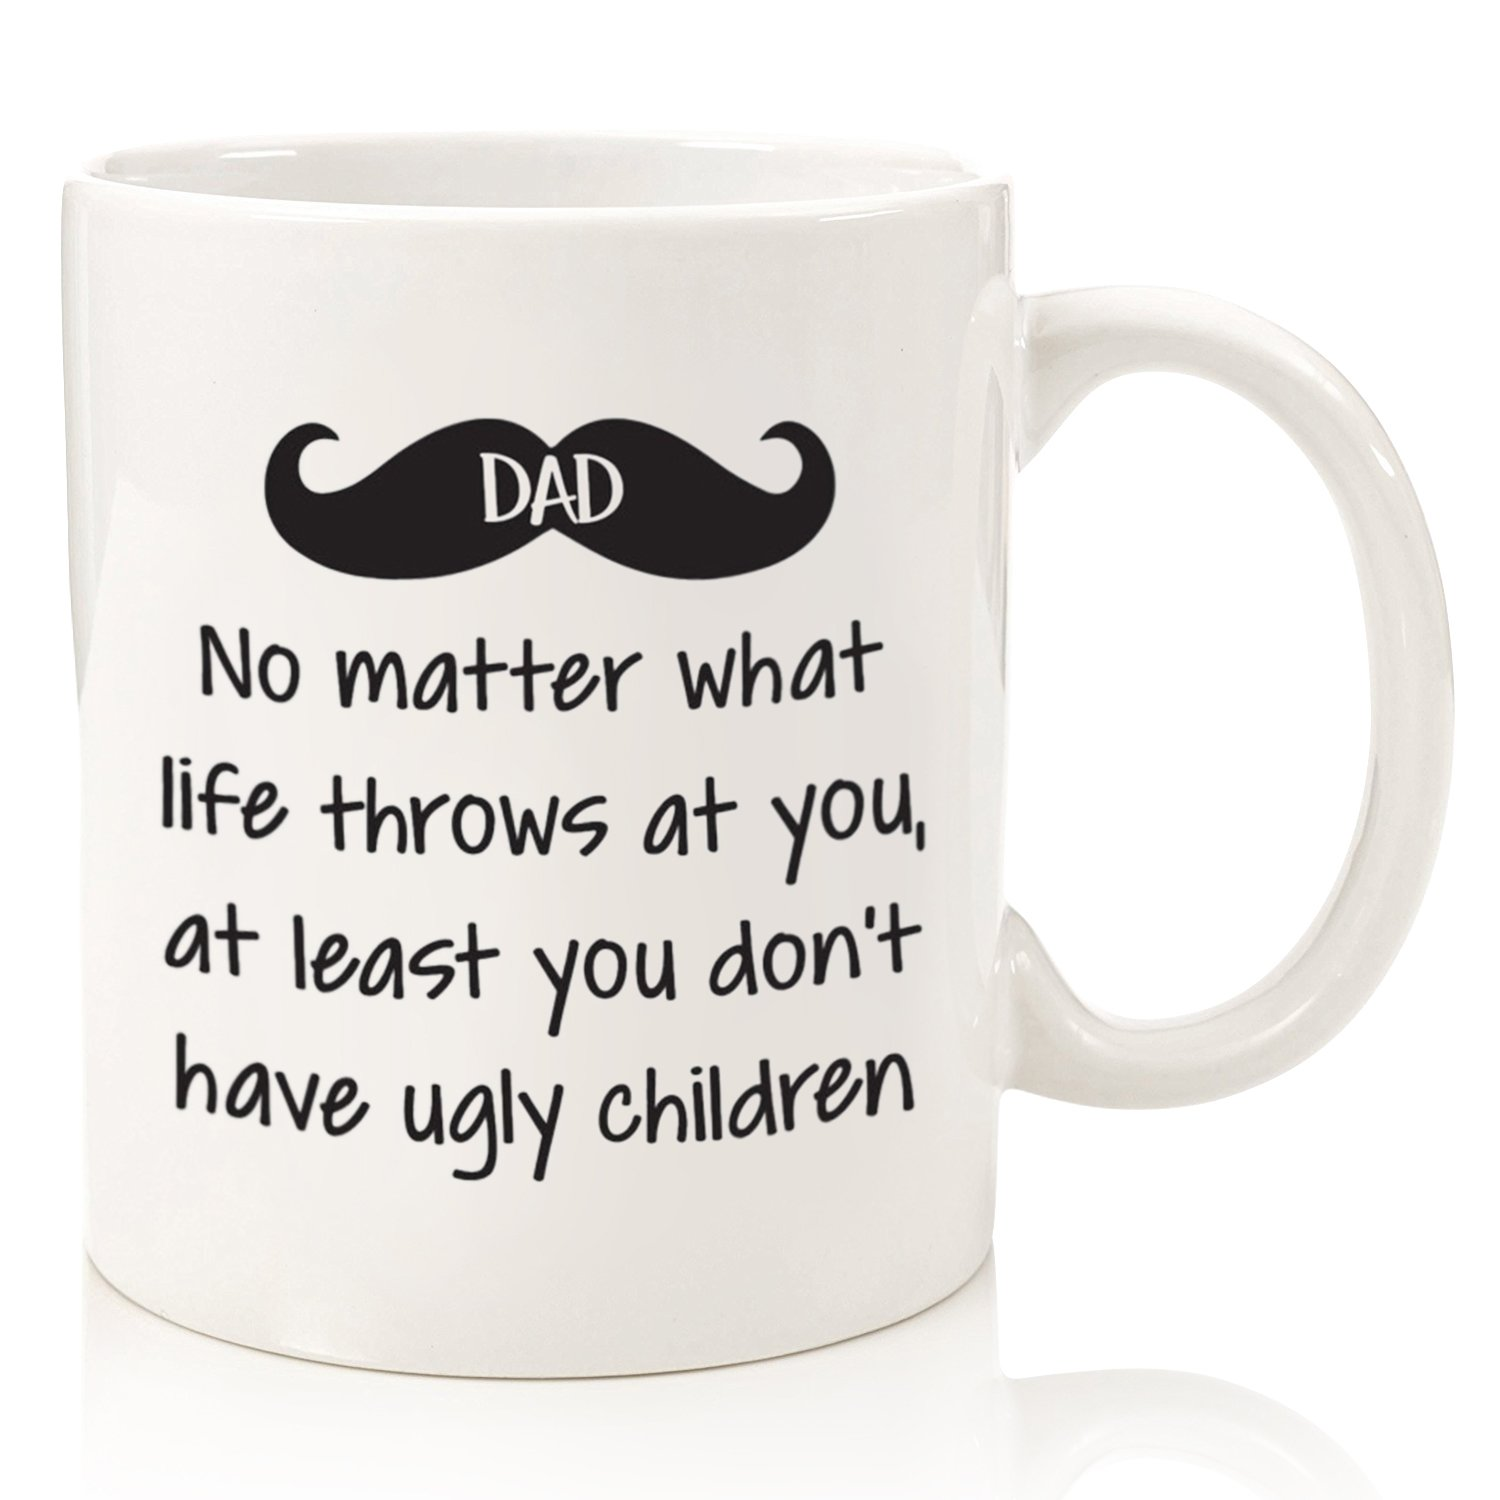 Dad No Matter What/Ugly Children Funny Coffee Mug - Best Birthday Gifts For Dads, Men - Unique Fathers Day Gift Idea For Him From Son, Daughter, Wife - Cool Present For a Father - Fun Novelty Cup